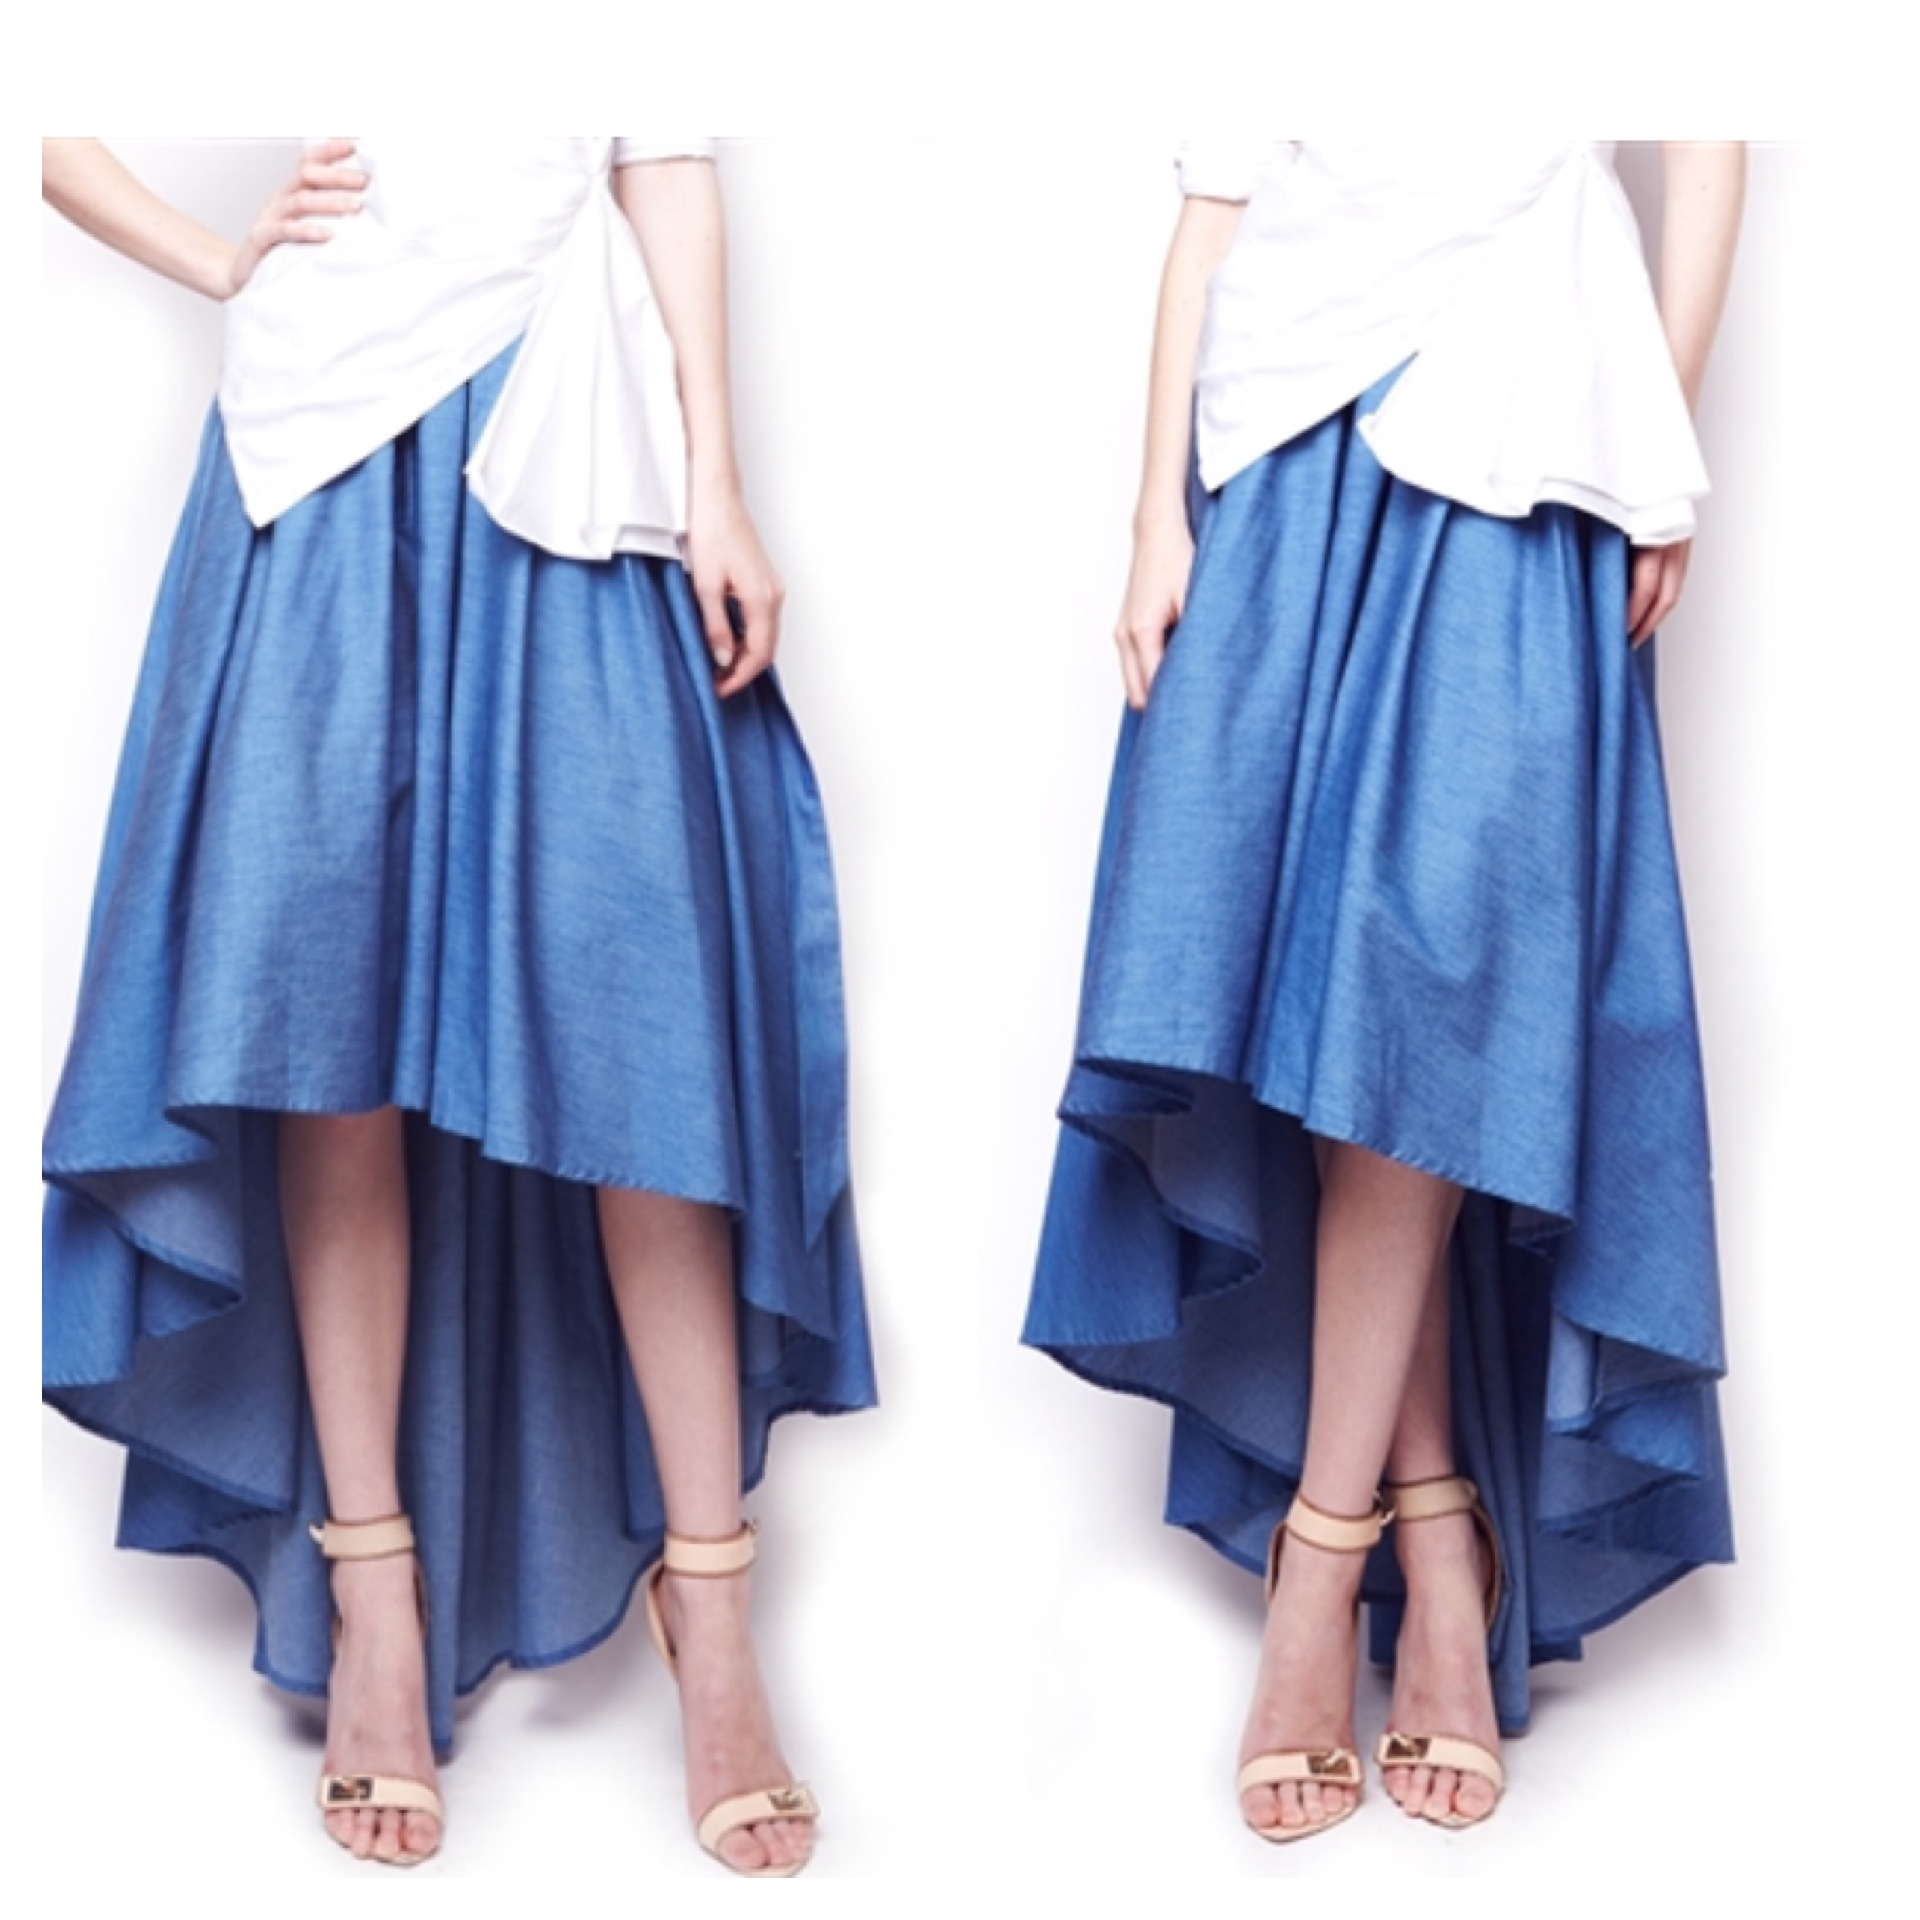 denim hi low skirt 183 ross unit llc couture boutique